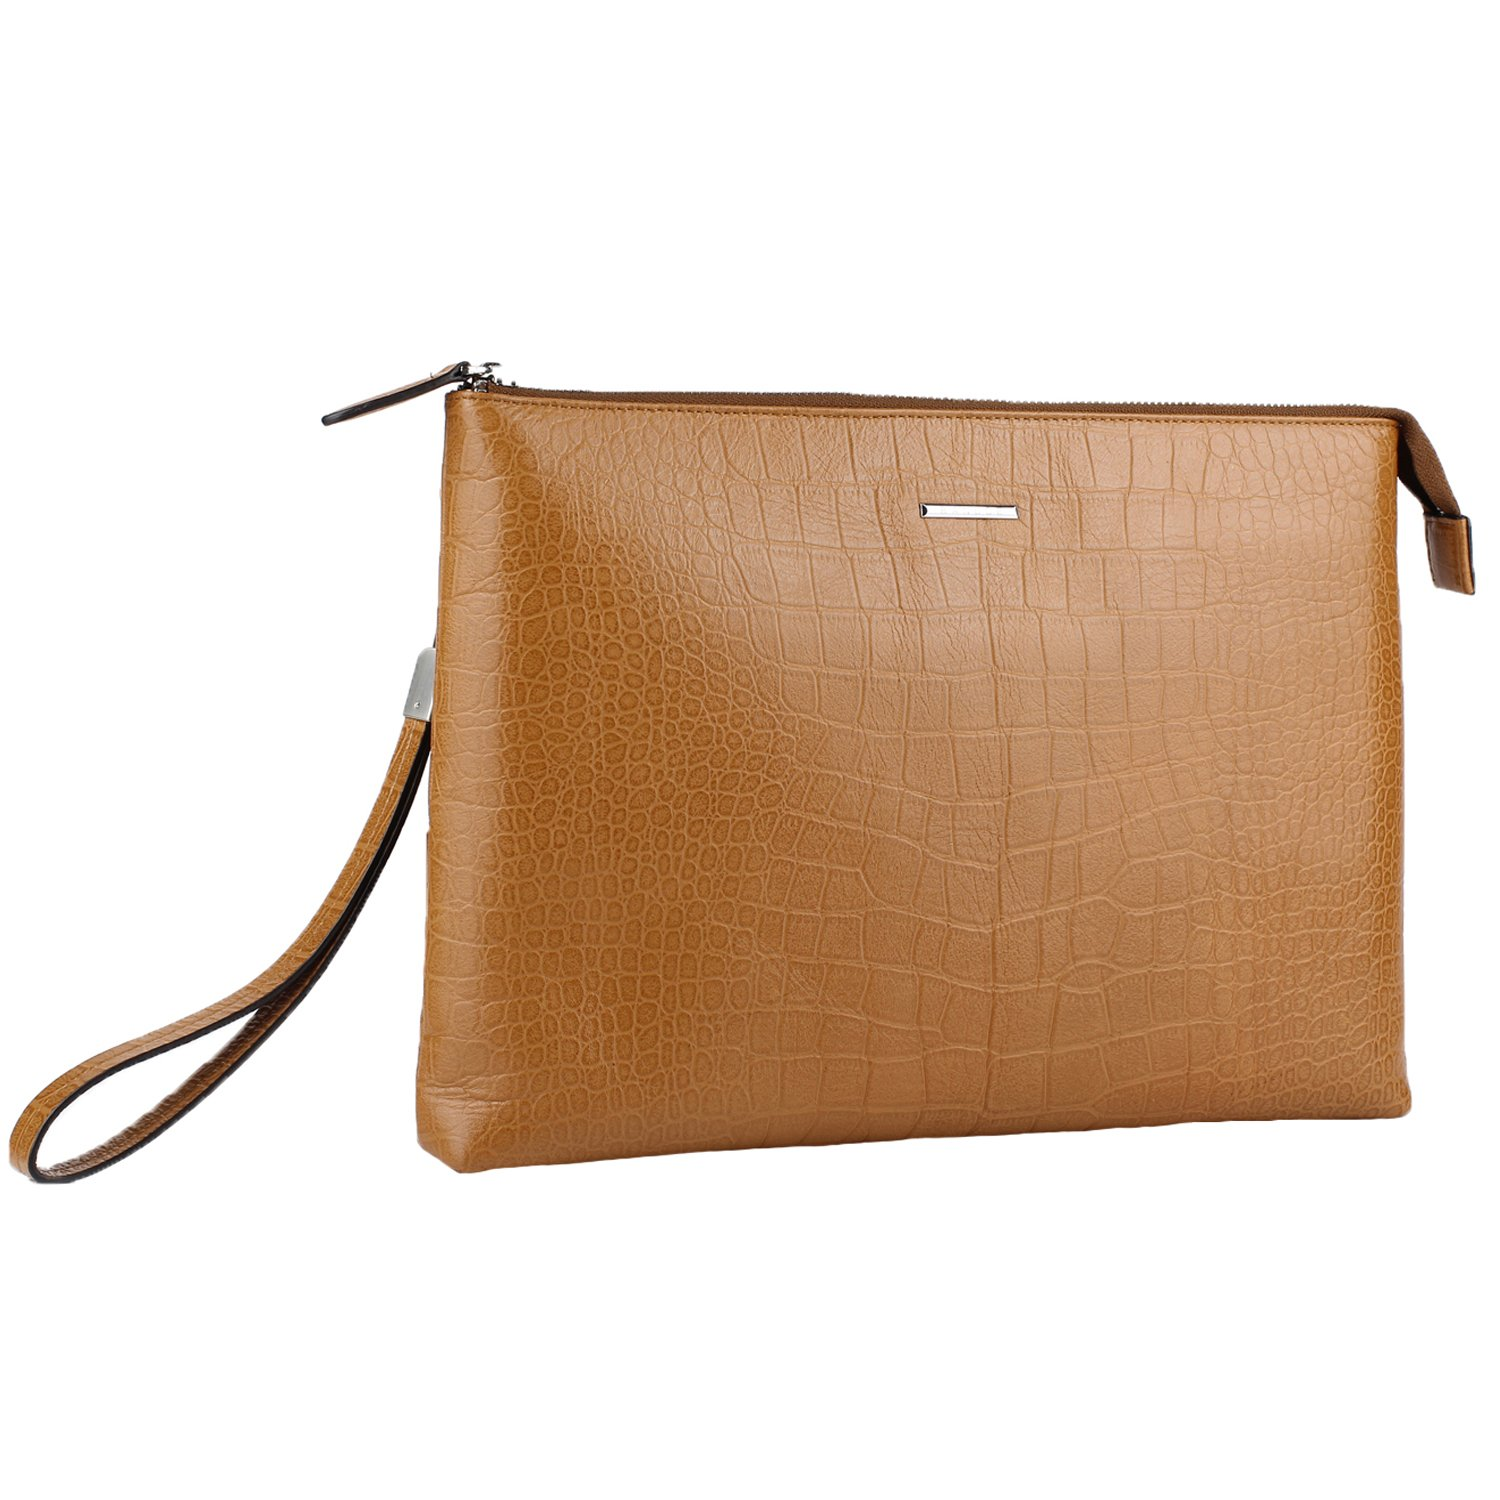 """Banuce Genuine Leather Sleeve Case for 9.7"""" iPad and Laptop Tablet Bag Clutch Purses Wallet"""